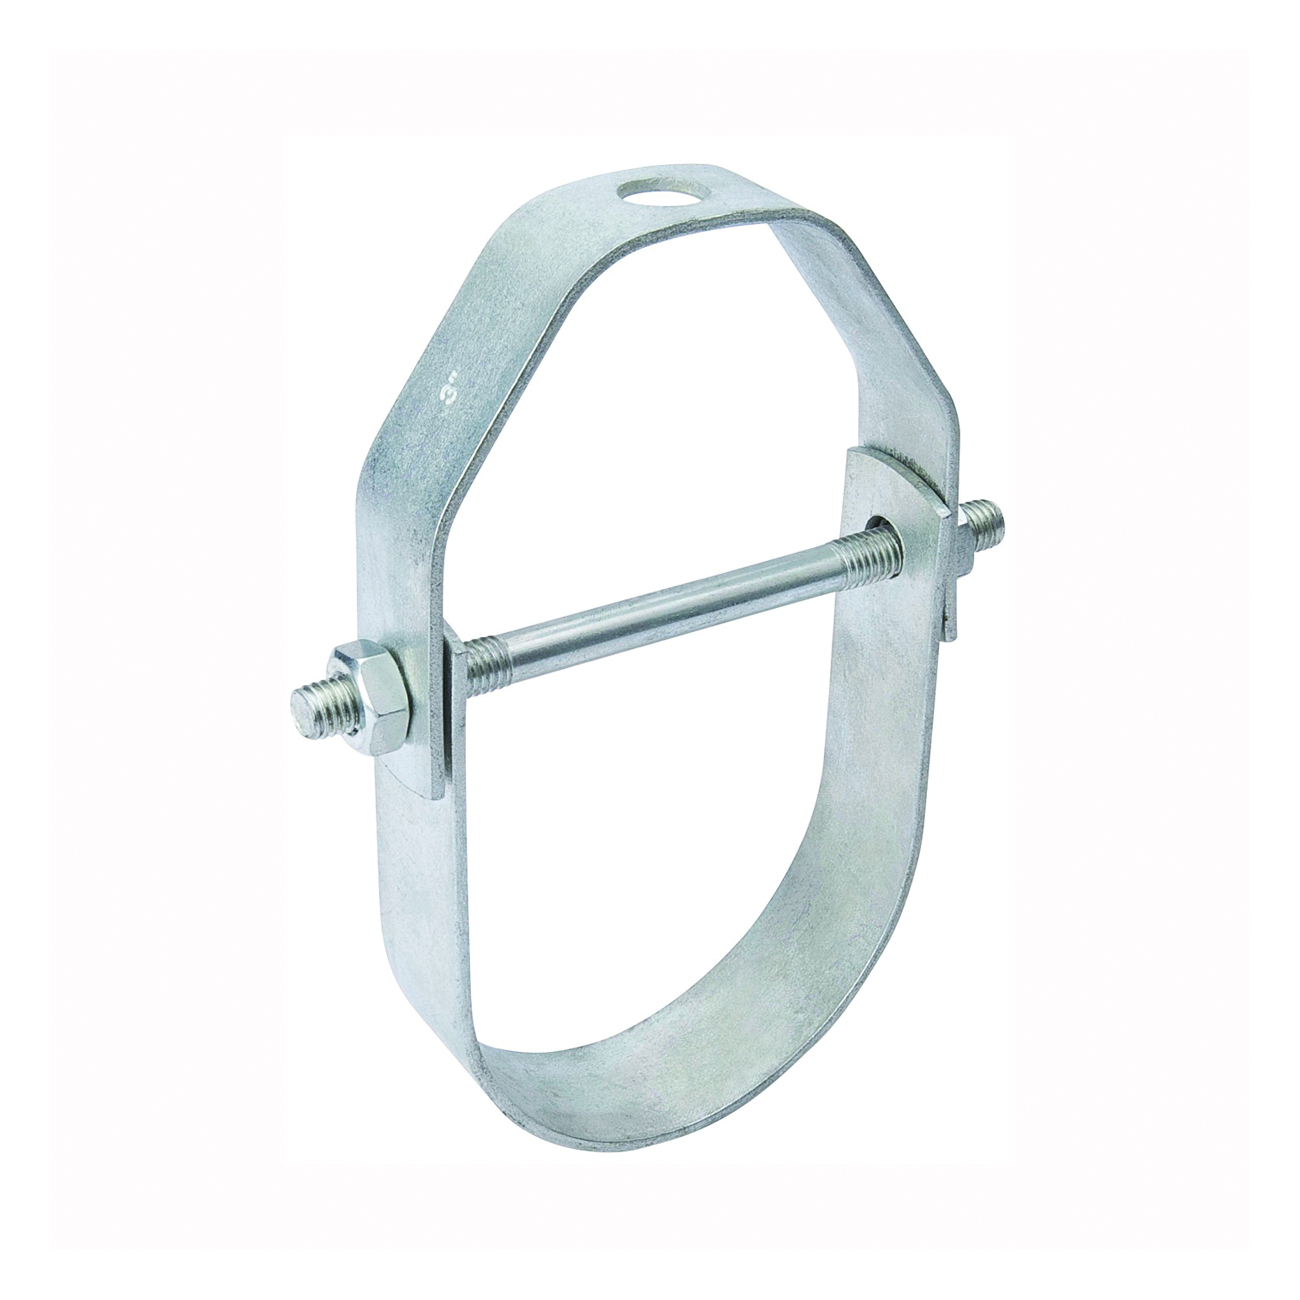 Picture of B & K G65-150HC Pipe Hanger, 1-1/2 in Opening, Galvanized Steel, 10